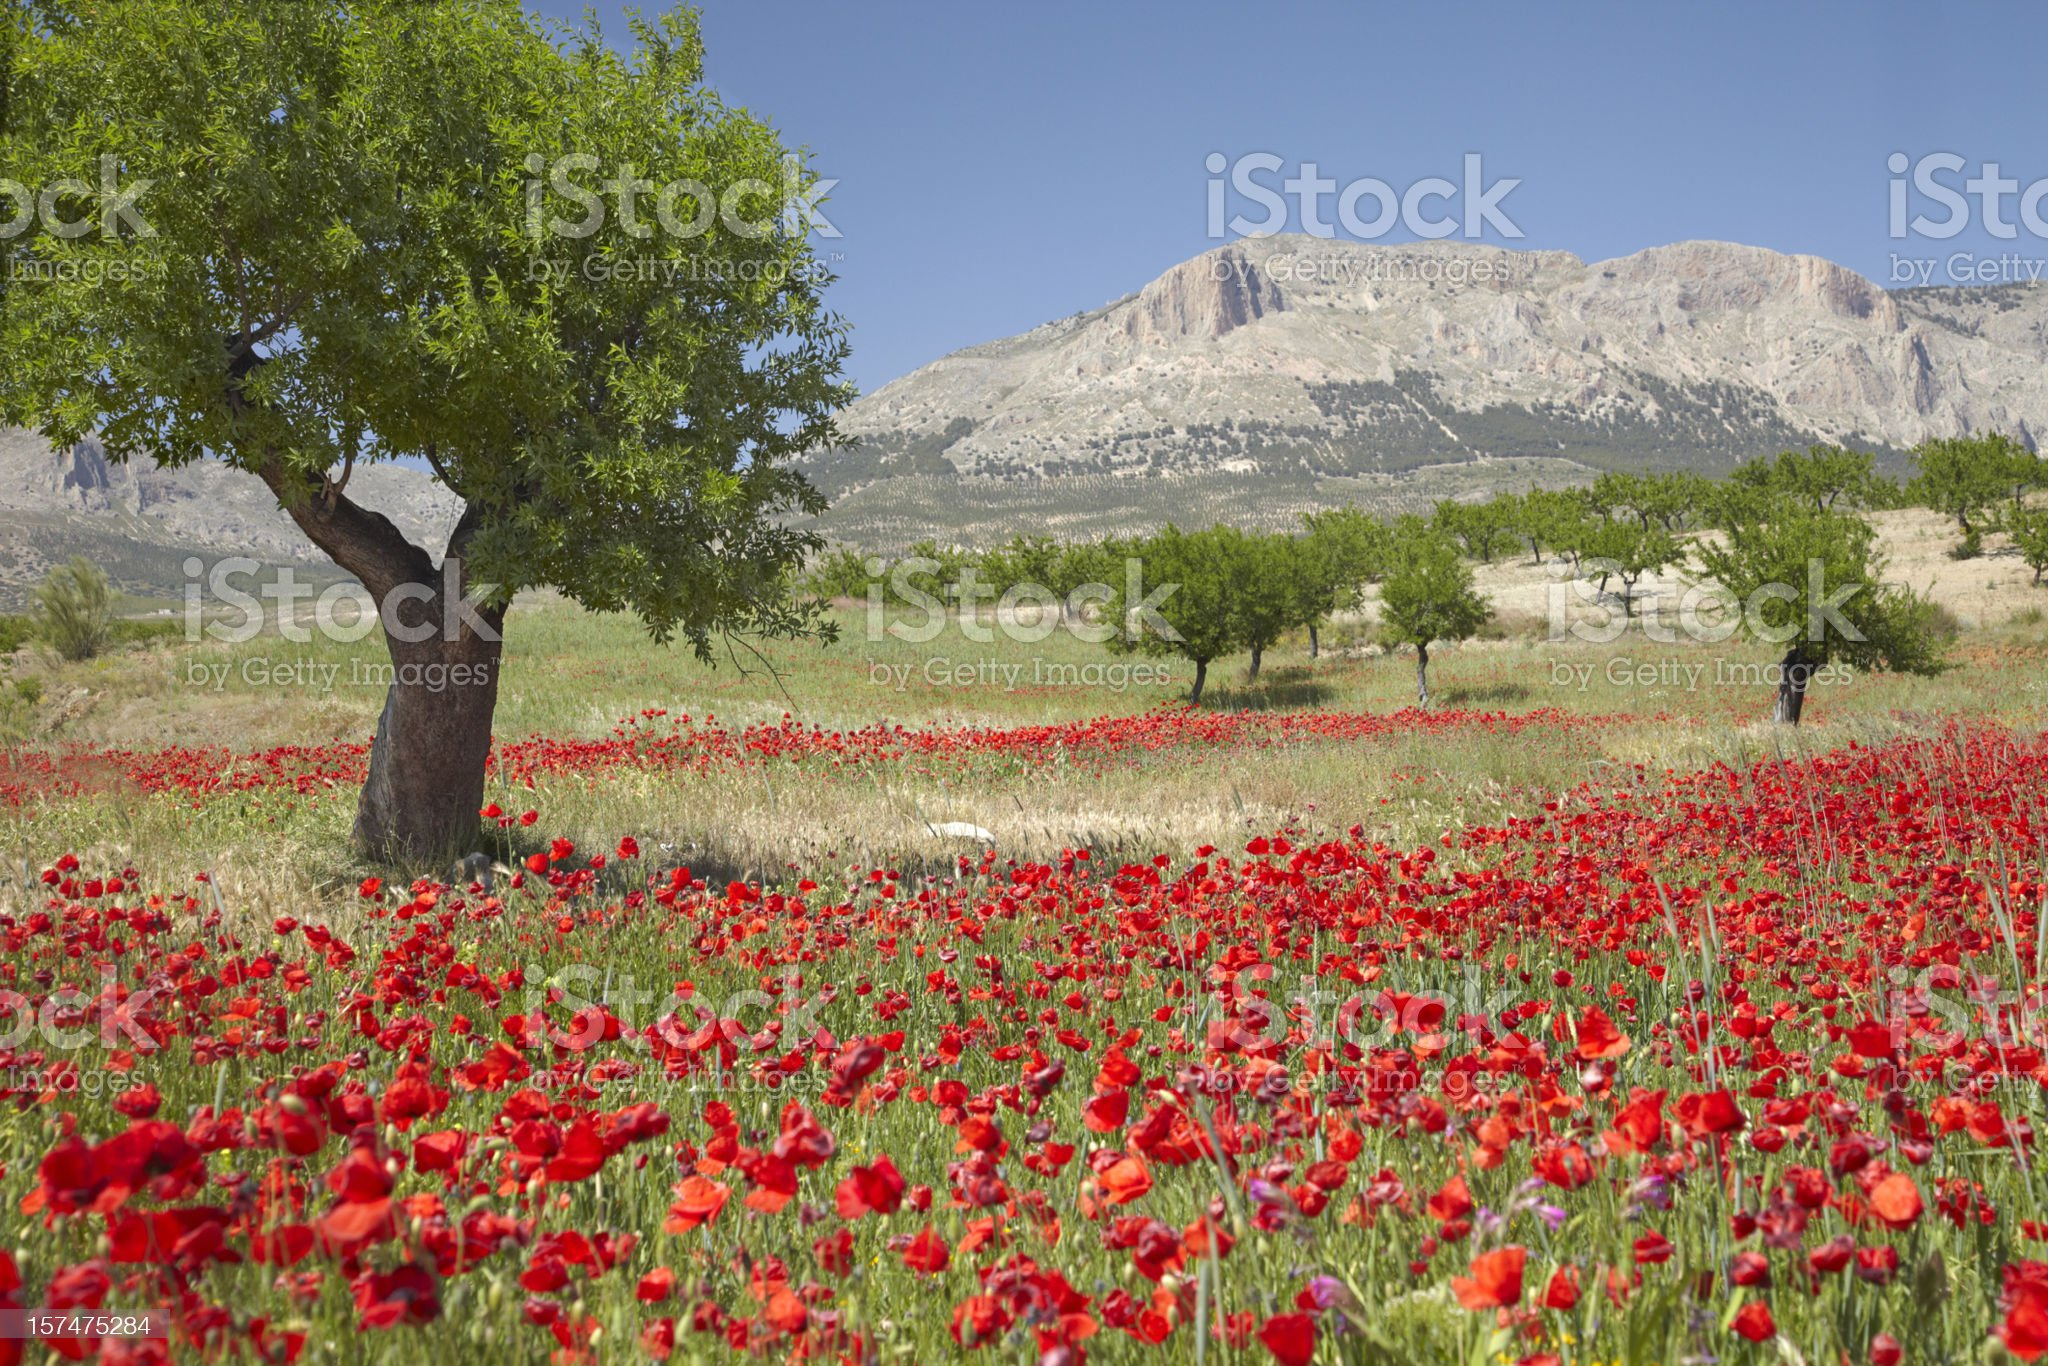 Poppy field with almond trees royalty-free stock photo